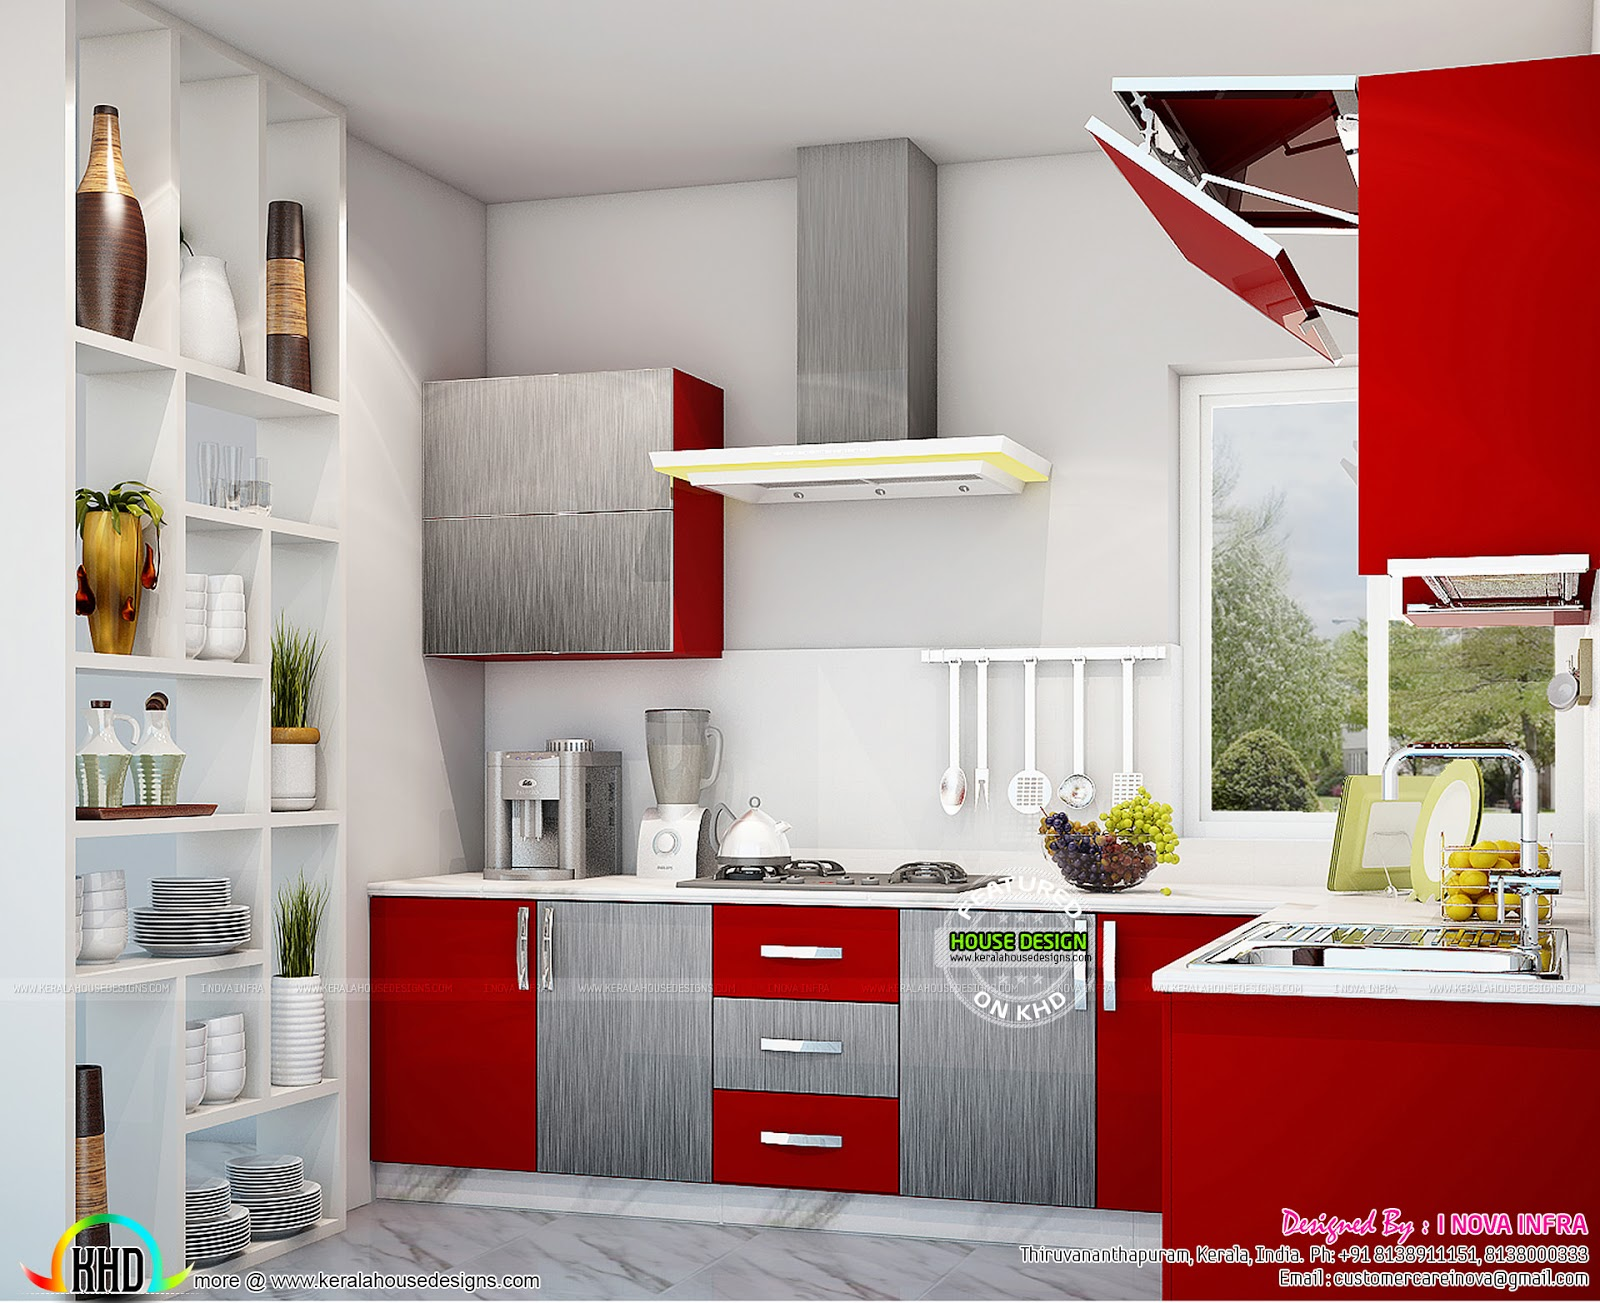 Kitchen interior works at trivandrum kerala home design for Interior design ideas for kitchen